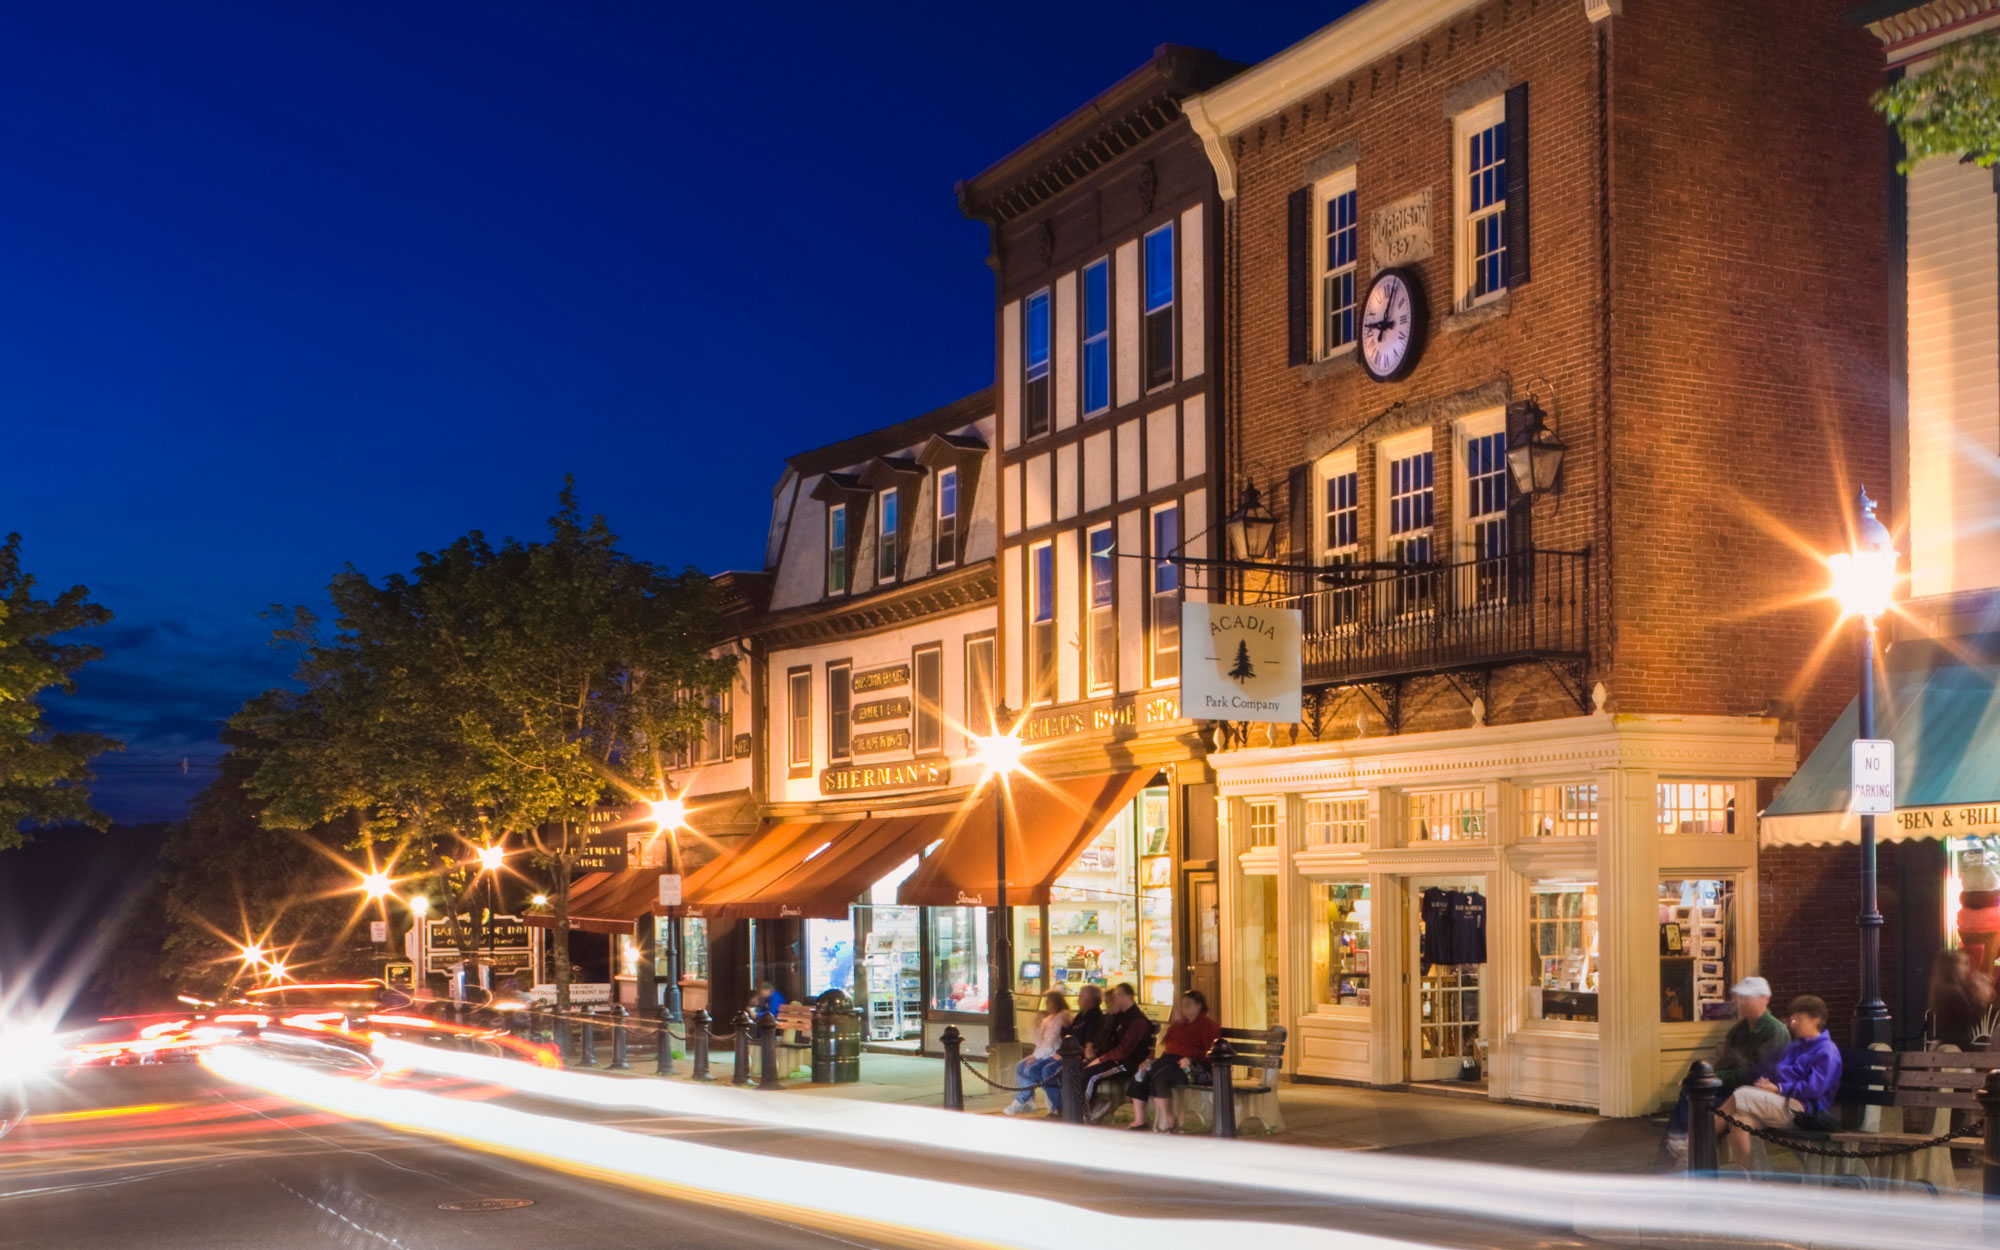 America's Best Towns for Halloween: Bar Harbor